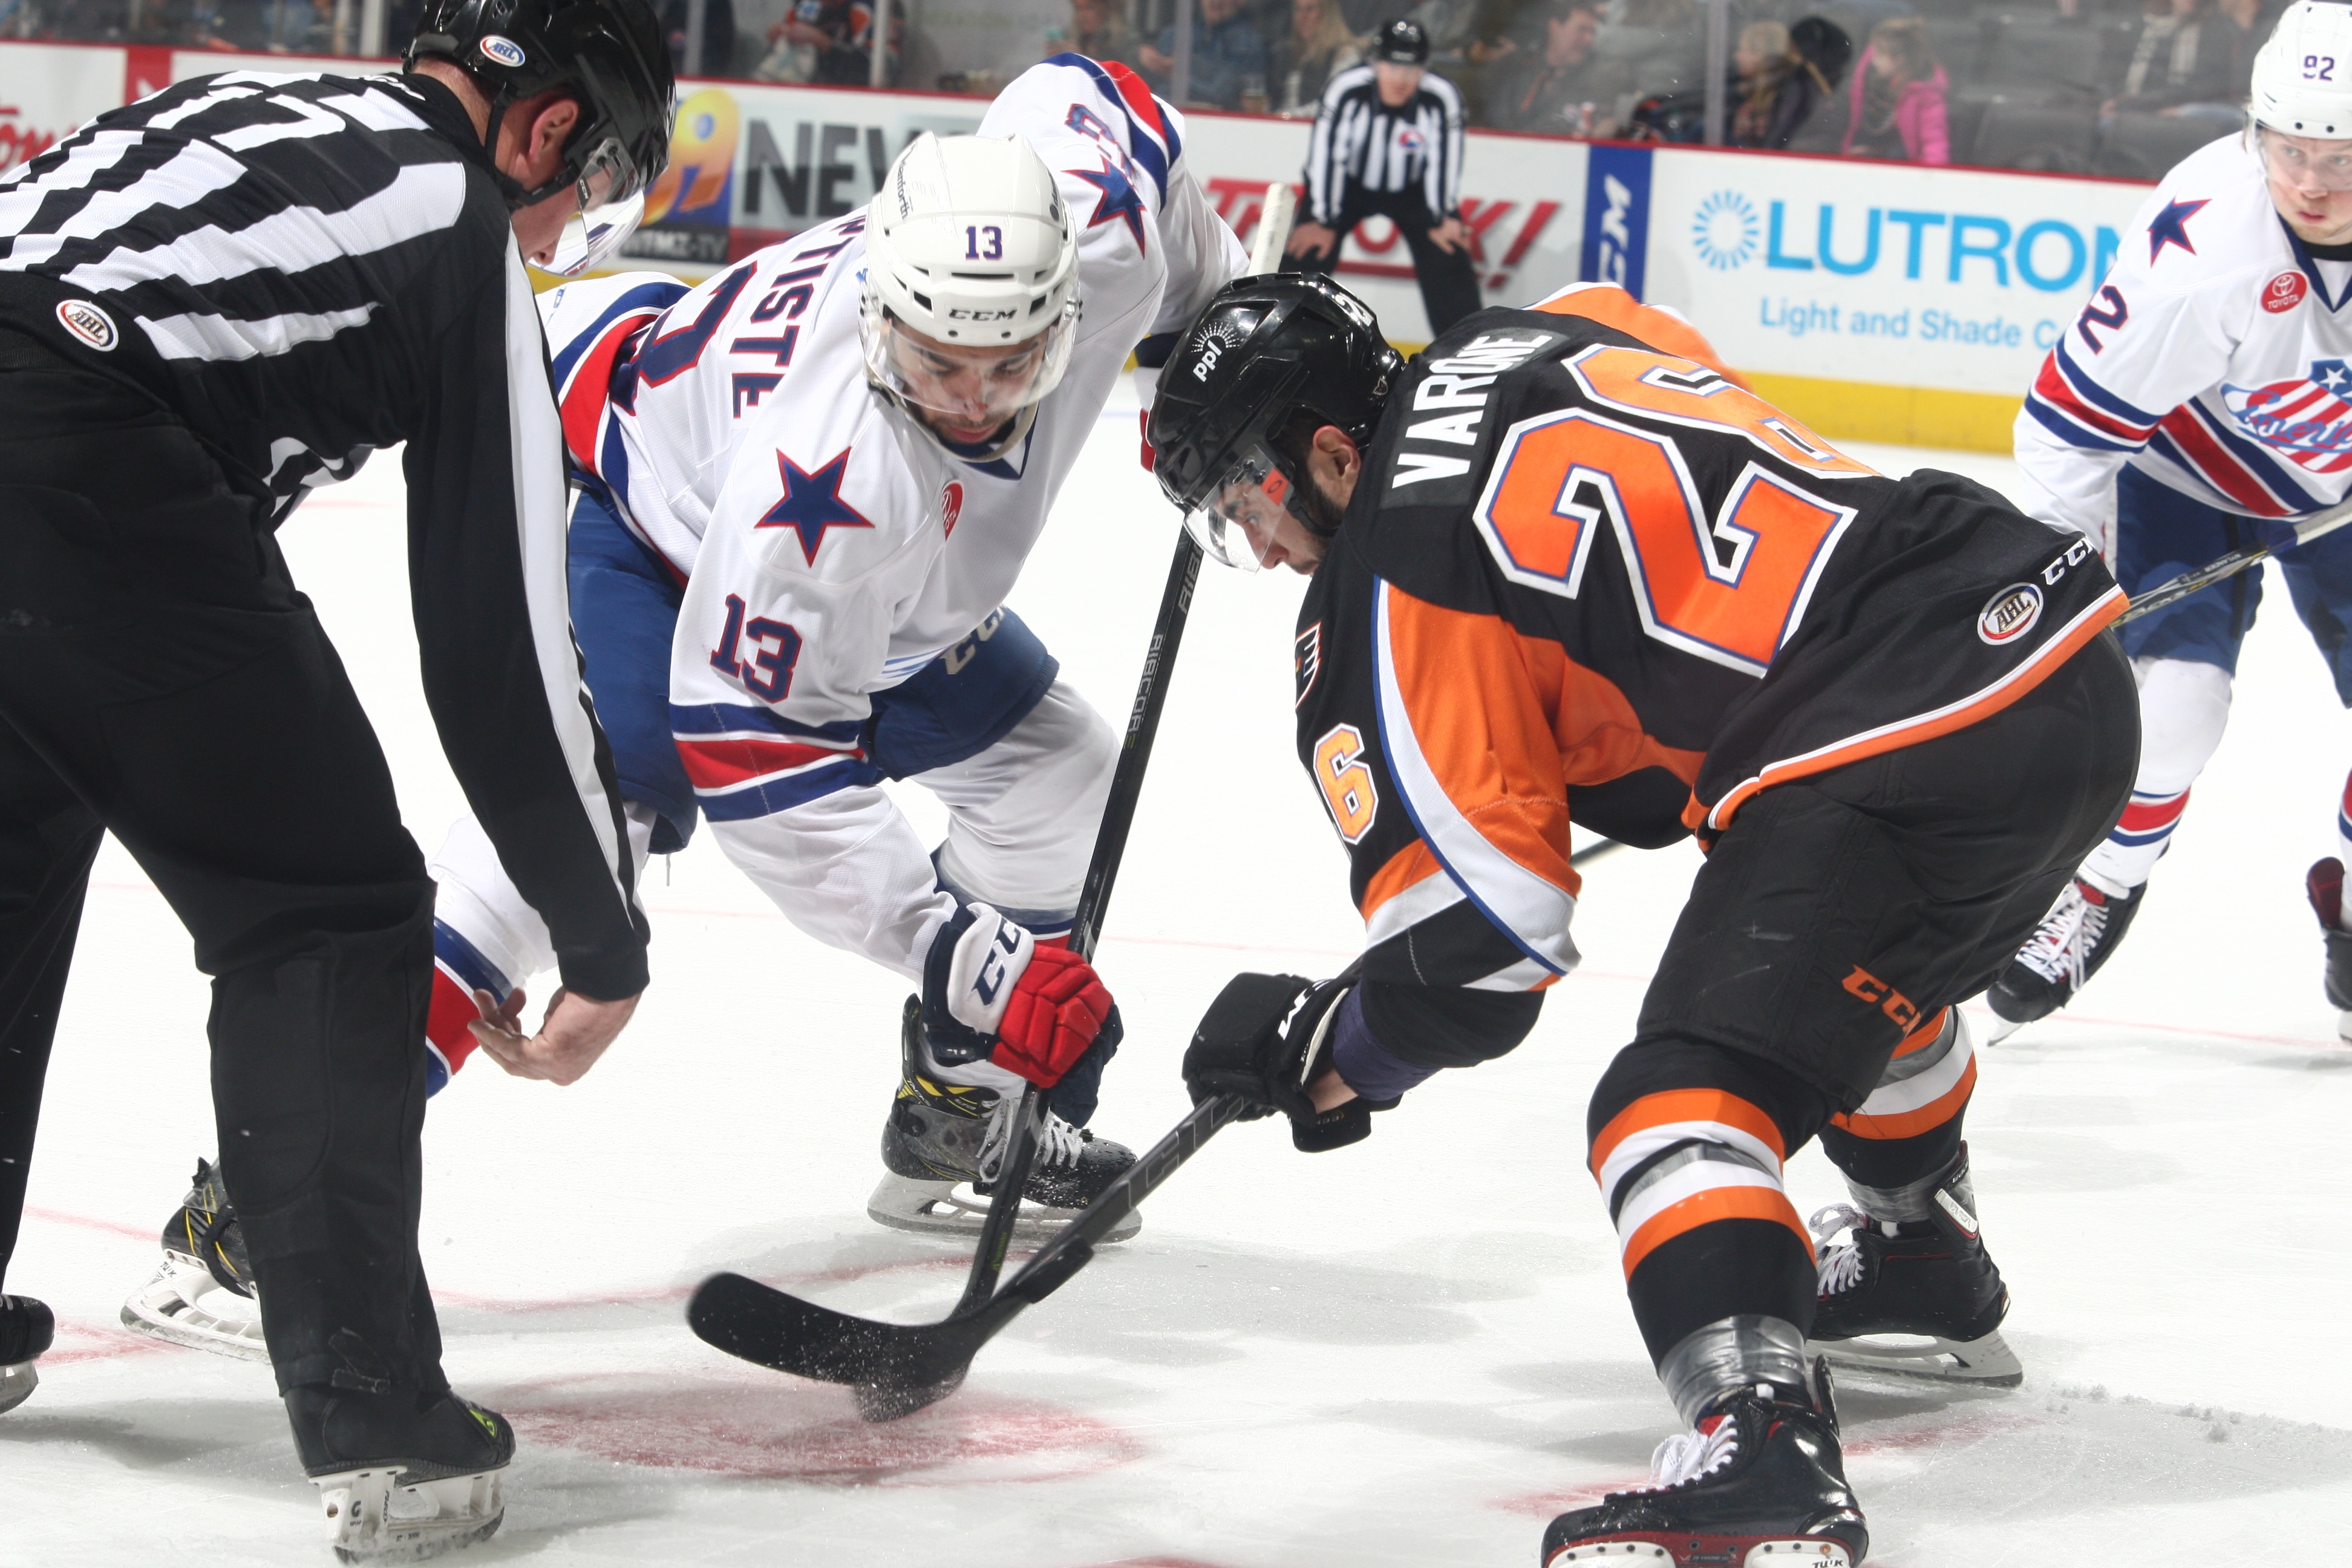 Amerks Lose Again and Continue Sinking